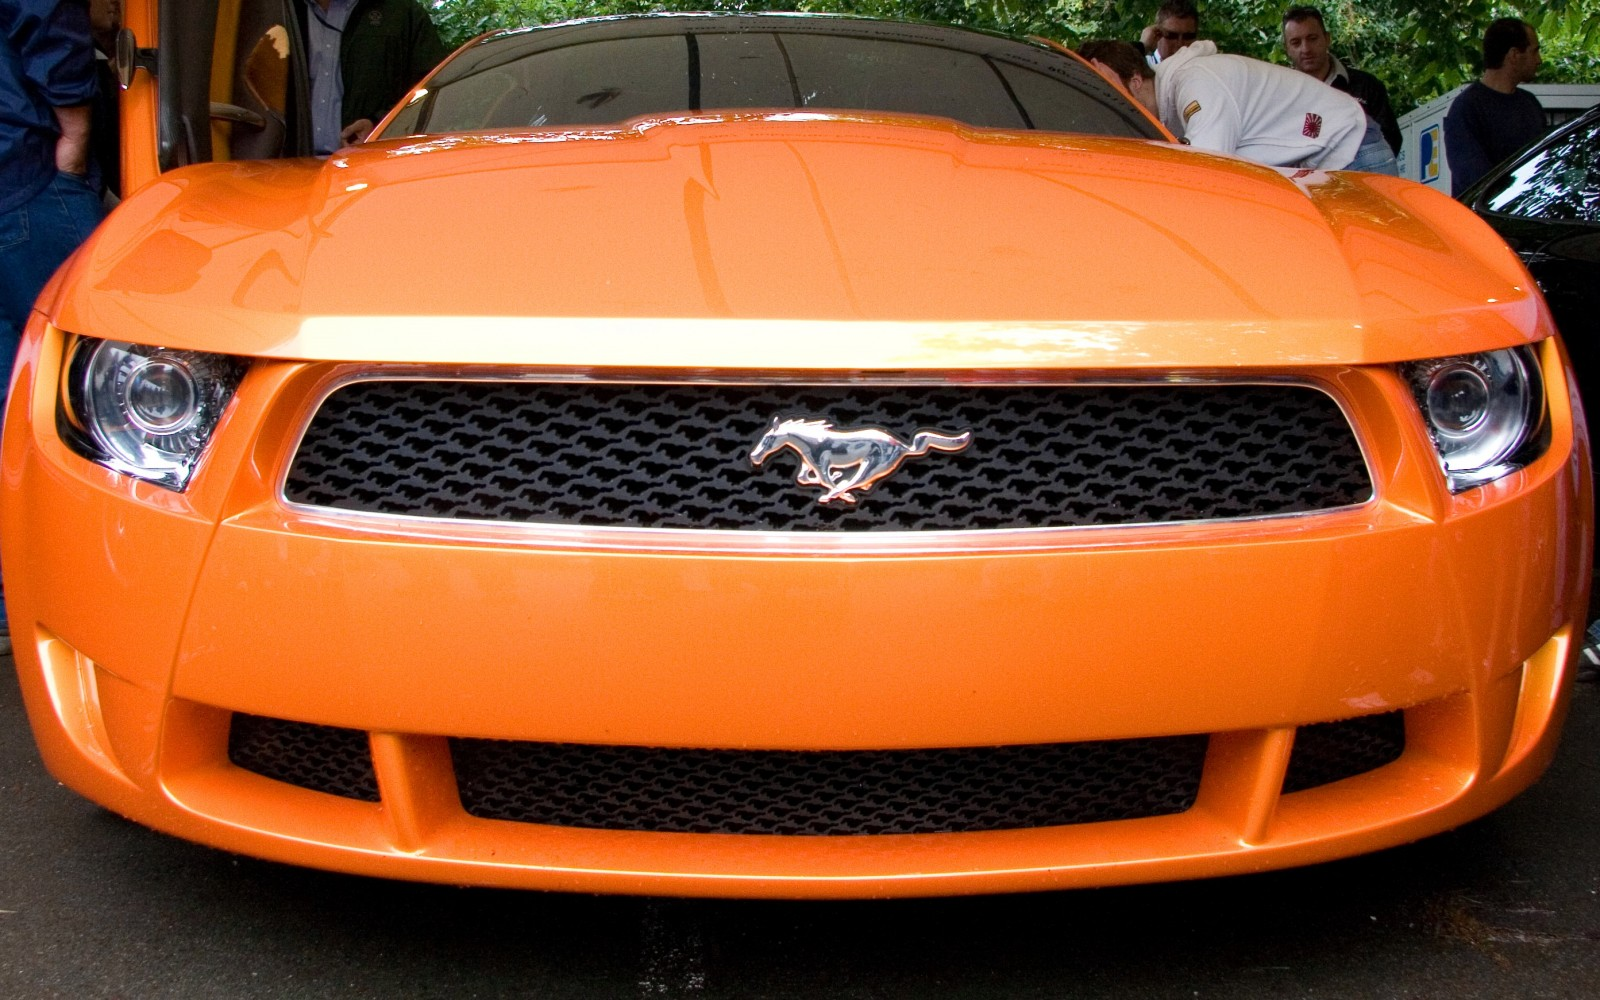 2006 Giugiaro Ford Mustang Concept Was Ringer vs In-House Ford Designs 5